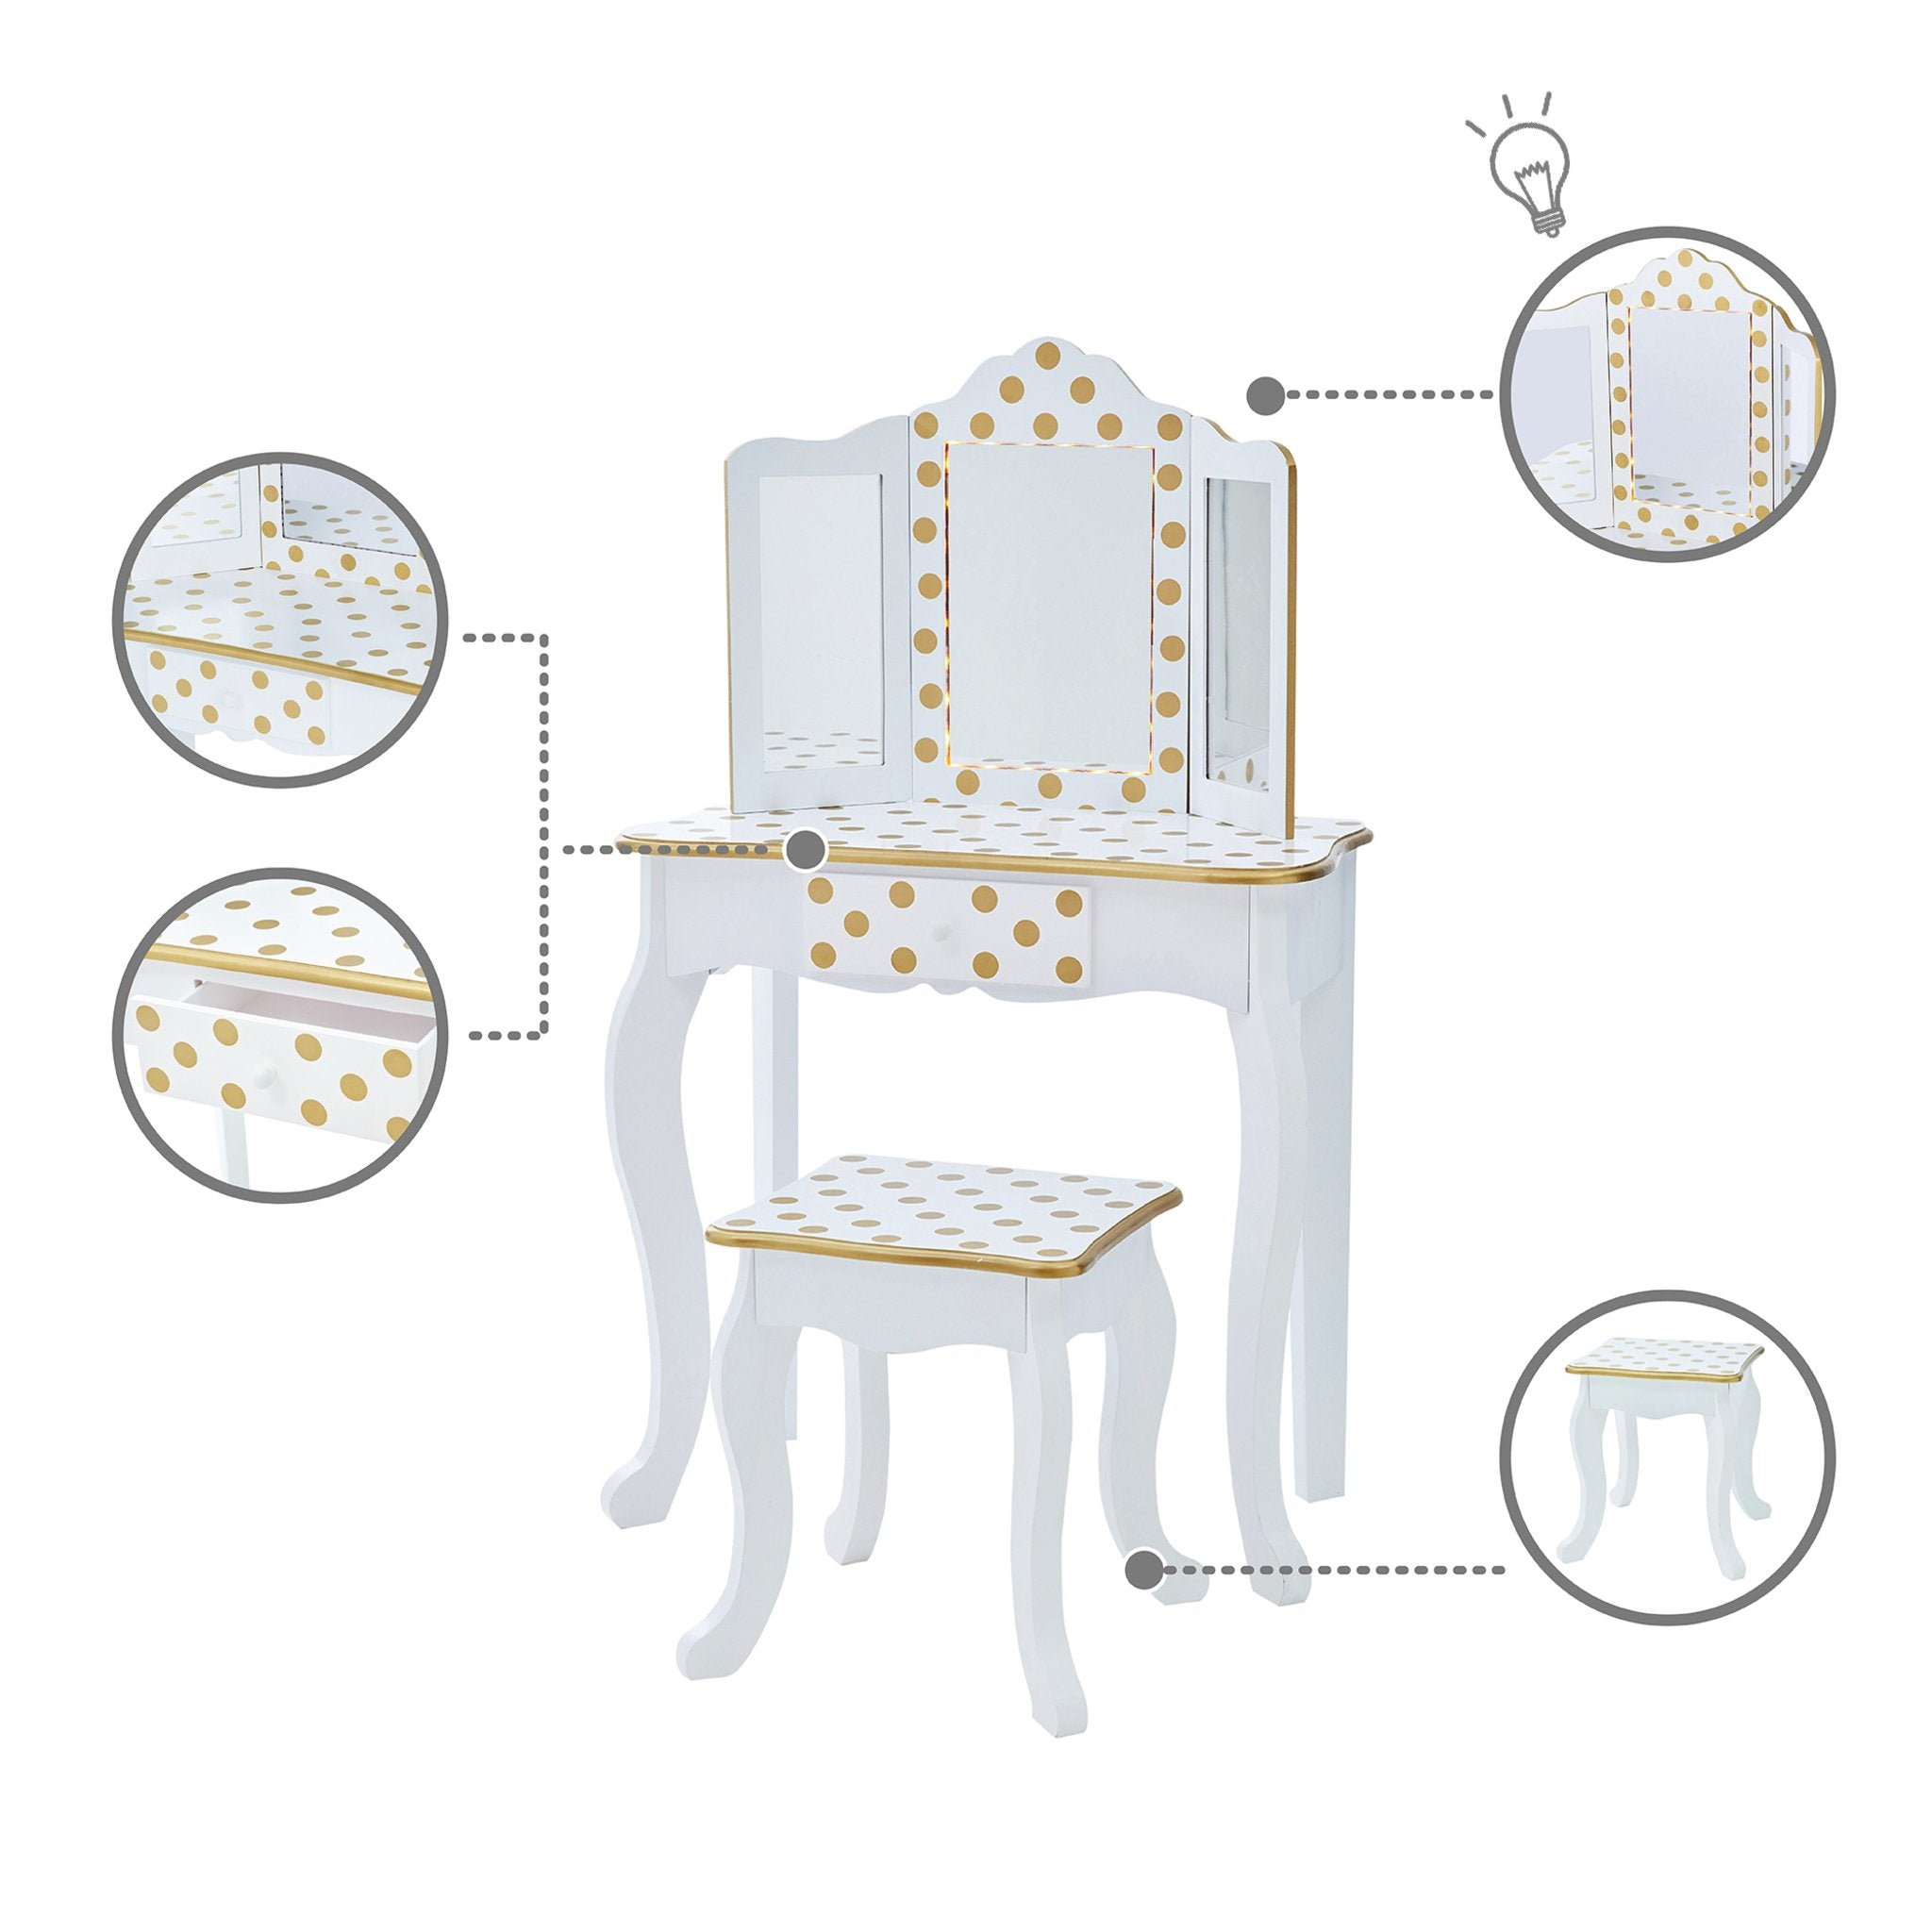 Load image into Gallery viewer, Fantasy Fields - Fashion Polka Dot Prints Gisele Play Vanity Set with LED Mirror Light - White / Gold | Teamson Kids - Kids Furniture